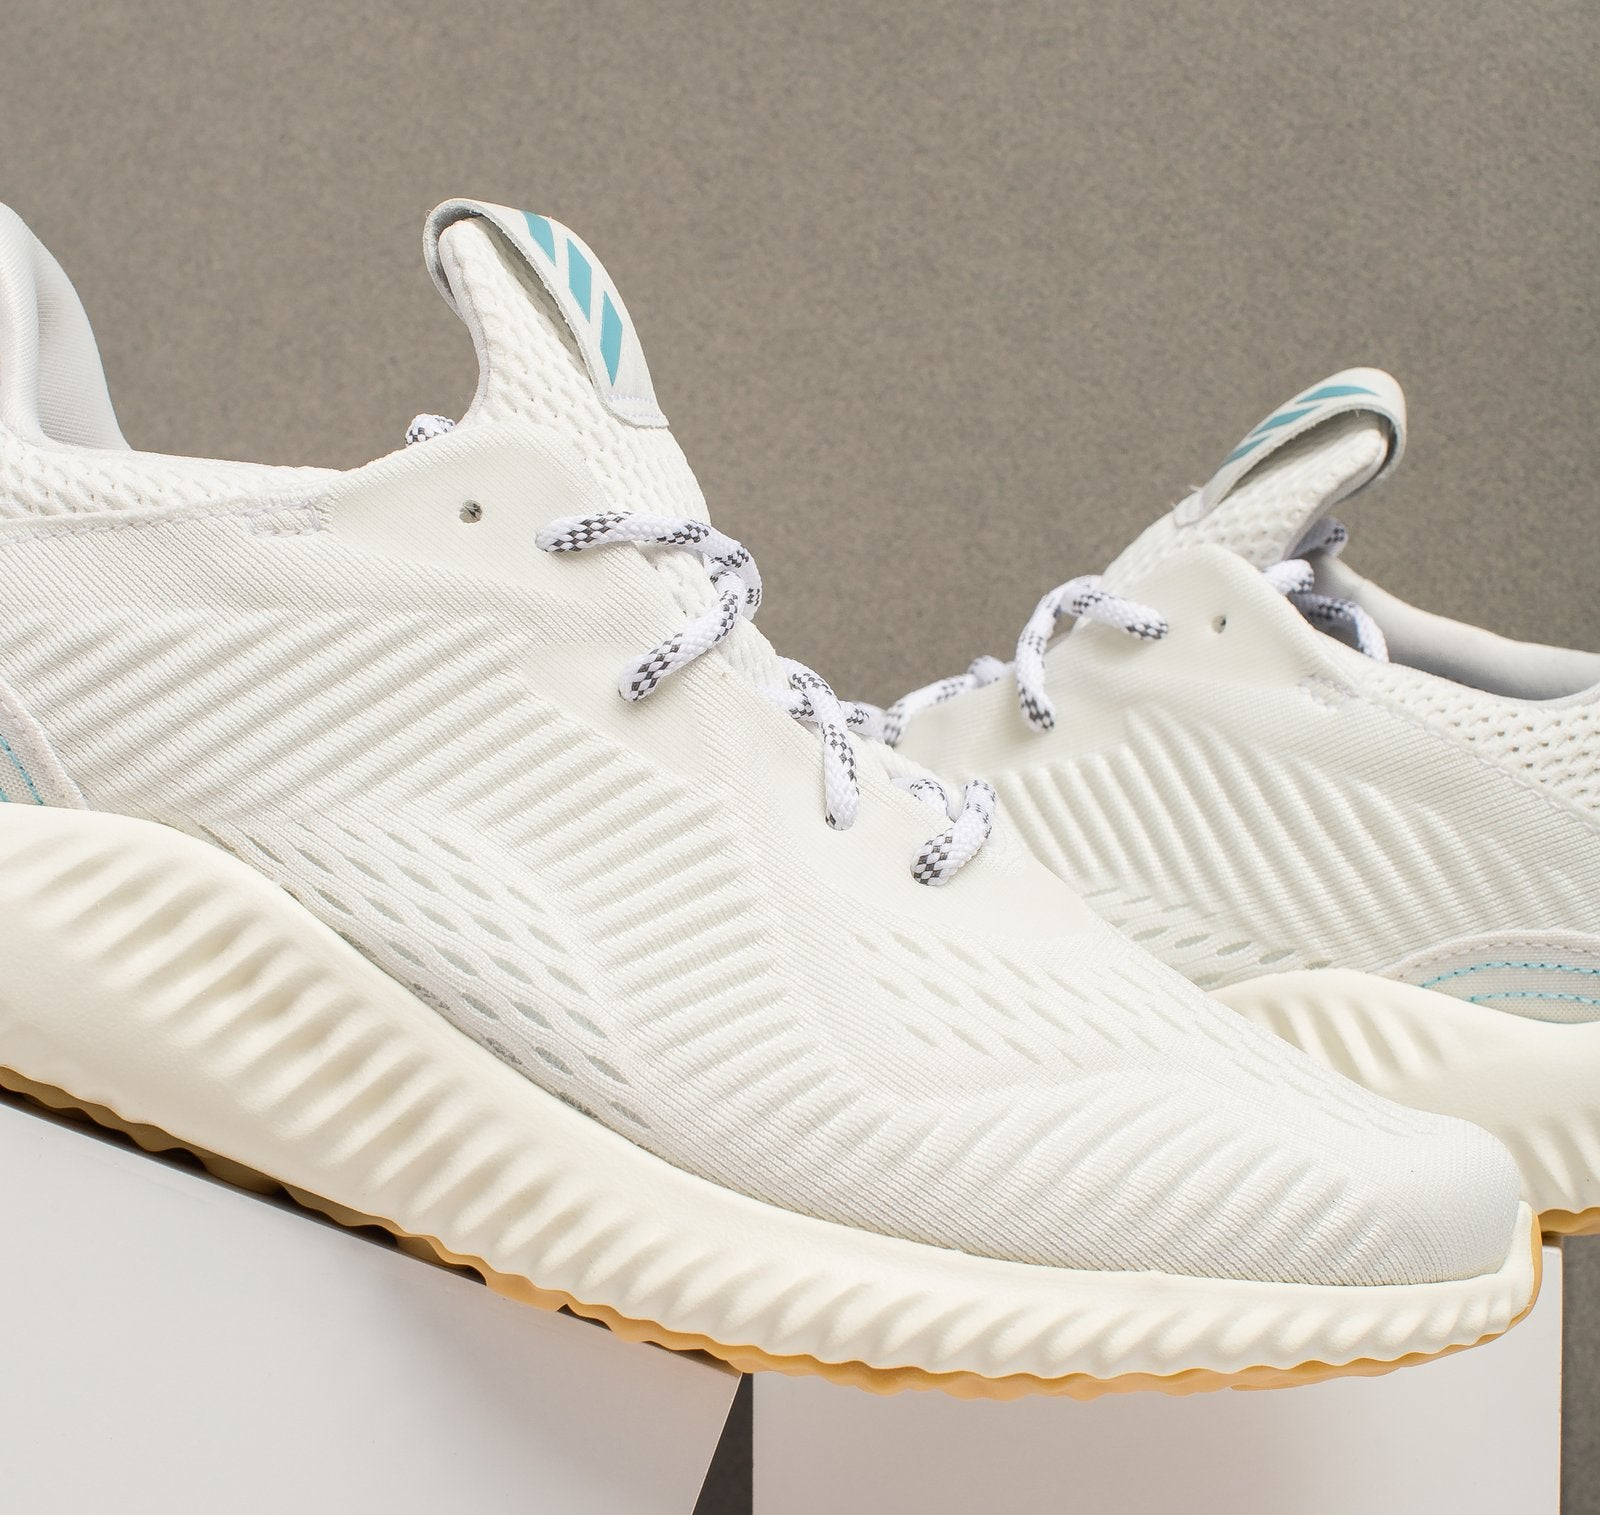 2c55fbf35d1af8 ADIDAS ALPHABOUNCE 1 PARLEY - Oneness Boutique